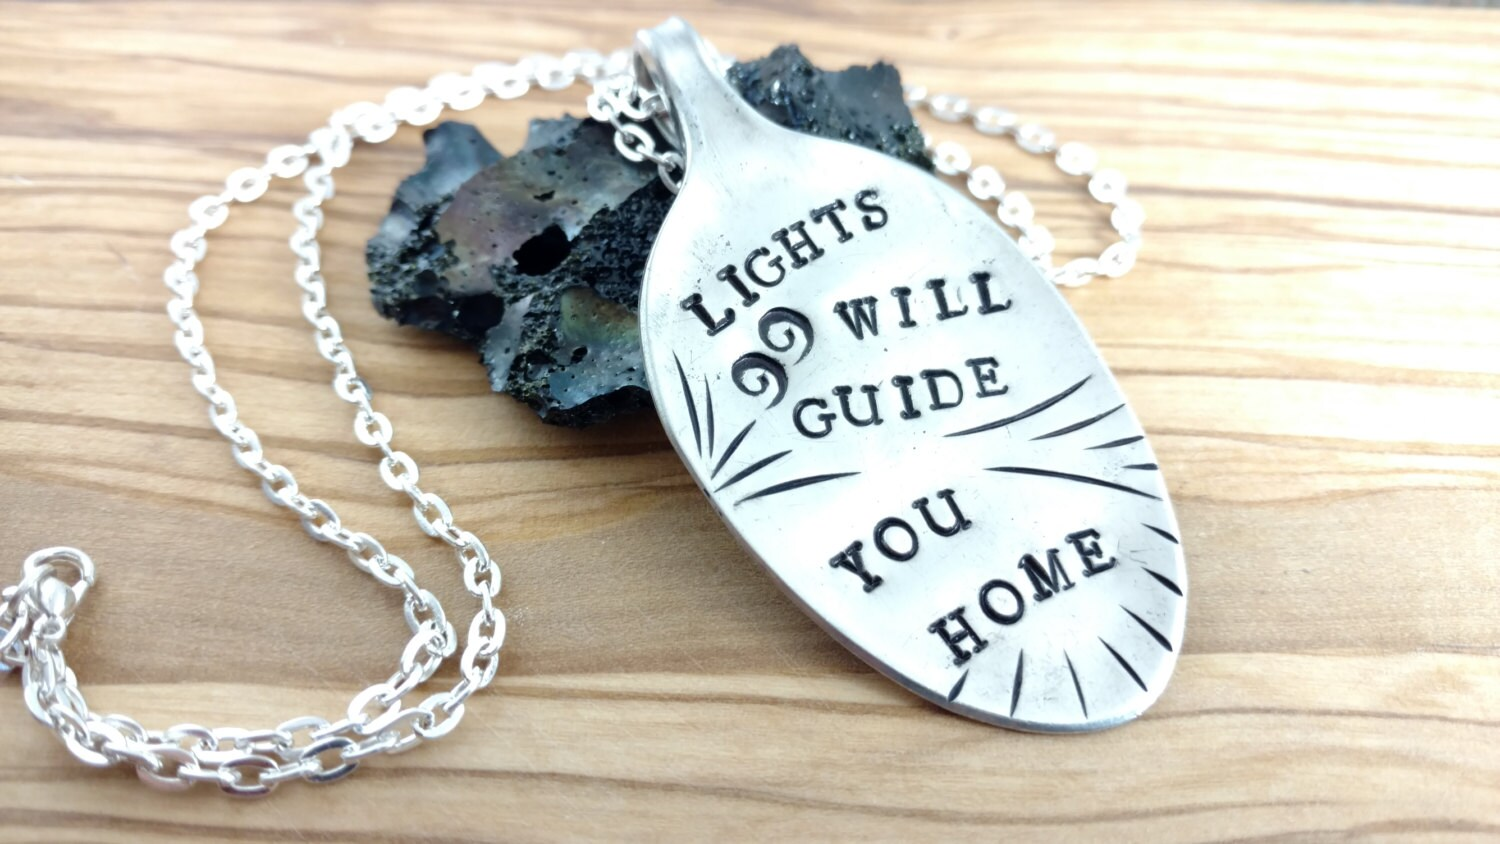 Coldplay Necklace Hand Stamped Silver Spoon Pendant Coldplay